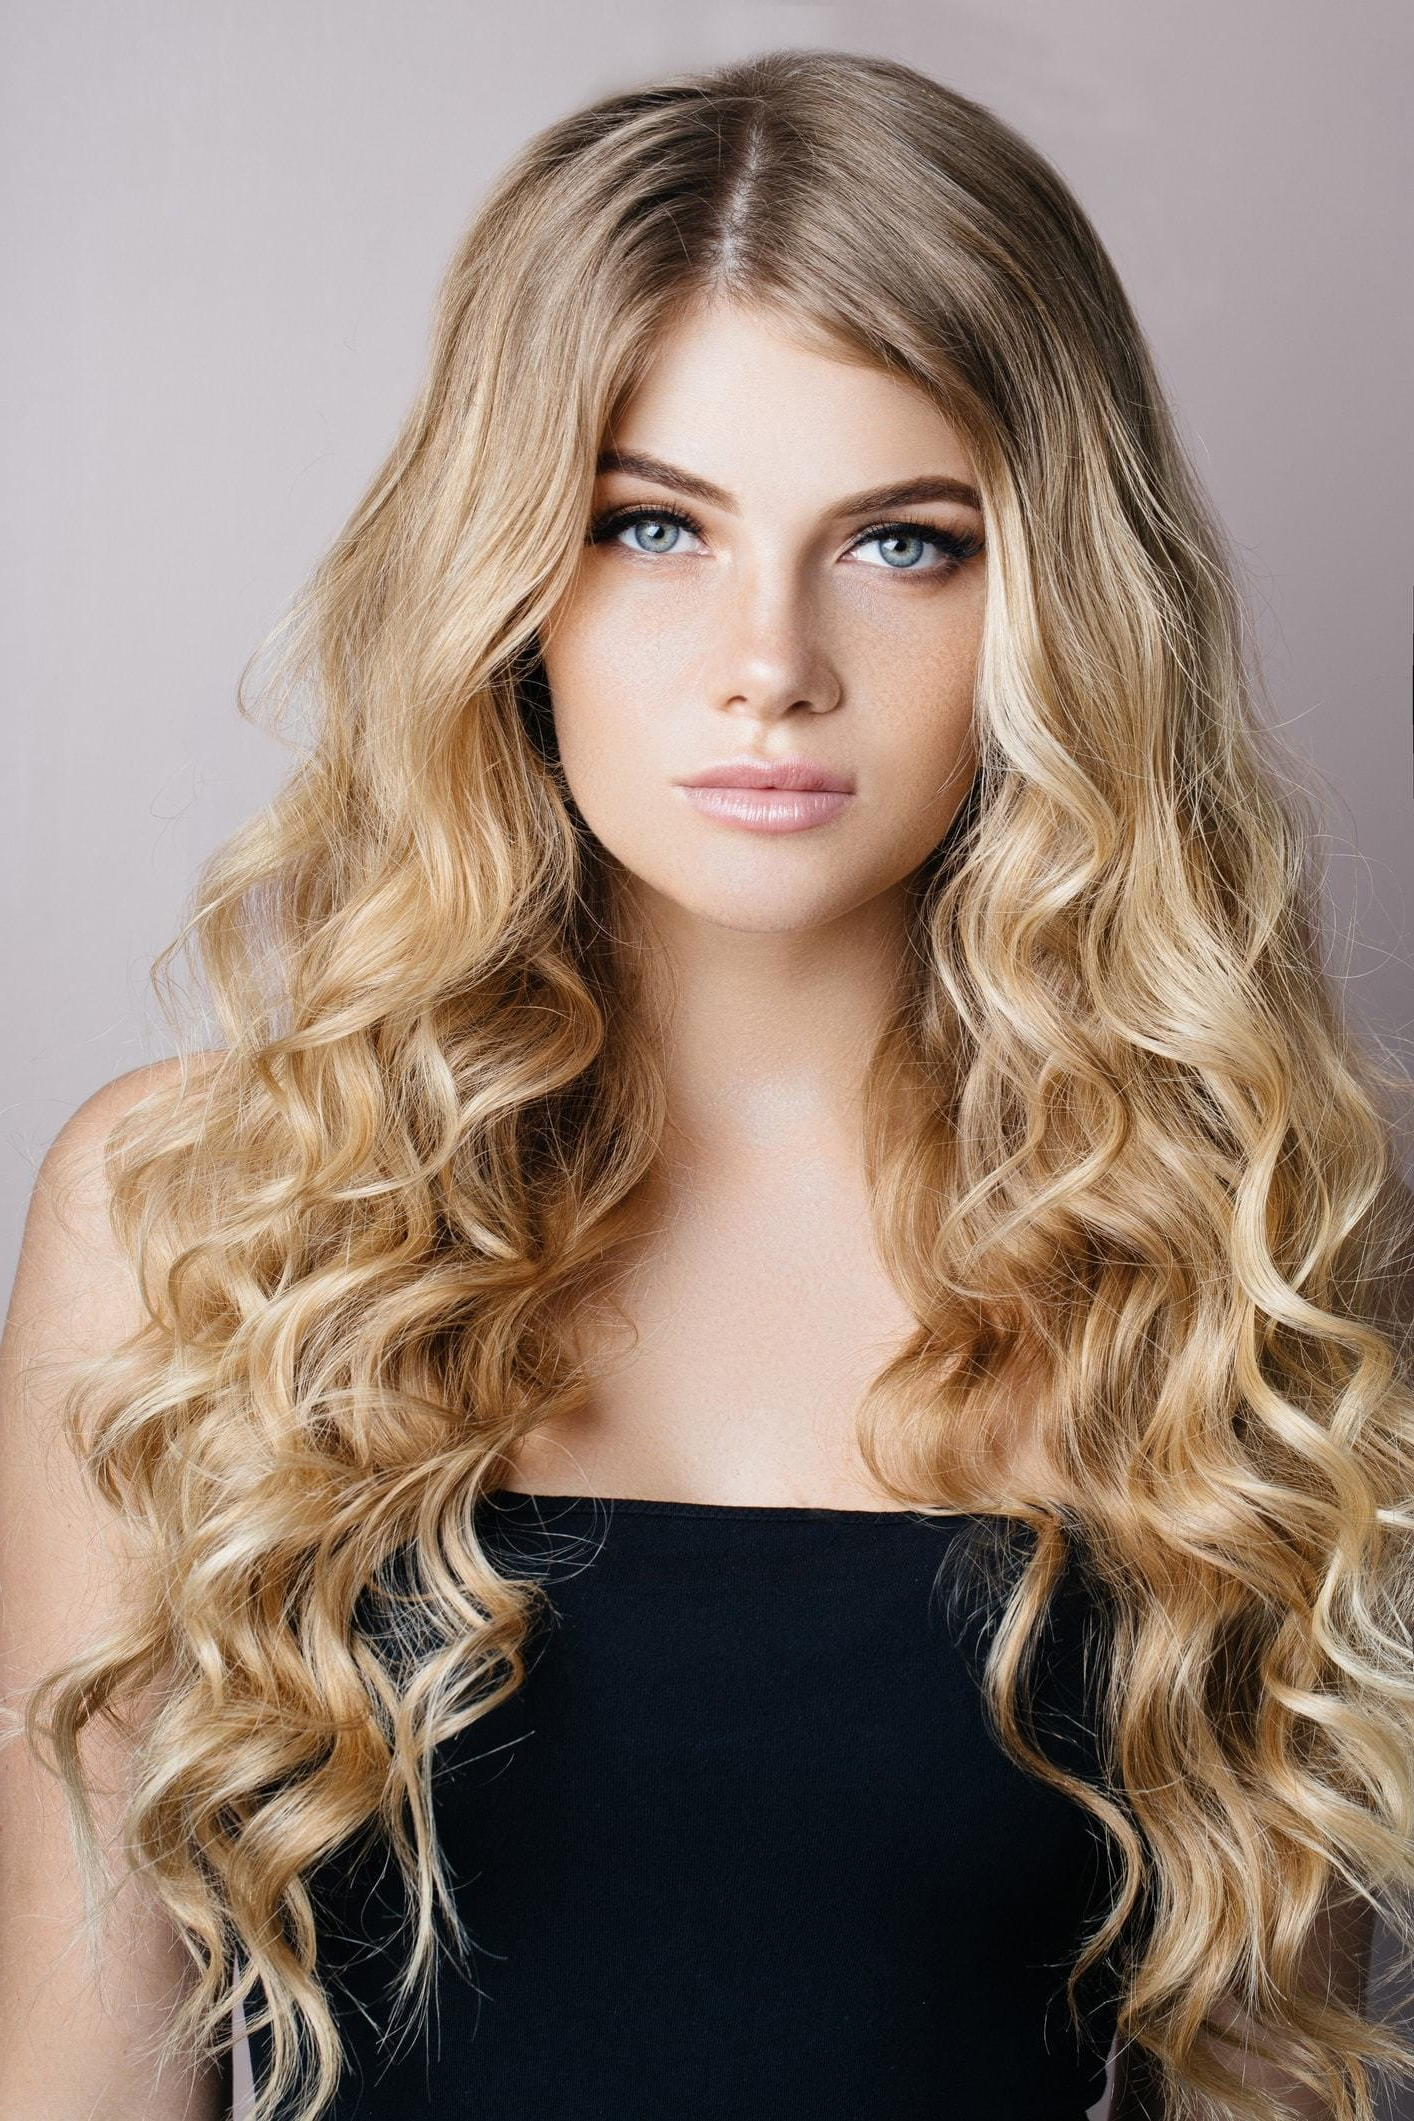 Well Known Medium Hairstyles For Very Curly Hair Inside Curly Hairstyle : Hairstyles For Really Curly Hair Black Medium (View 19 of 20)